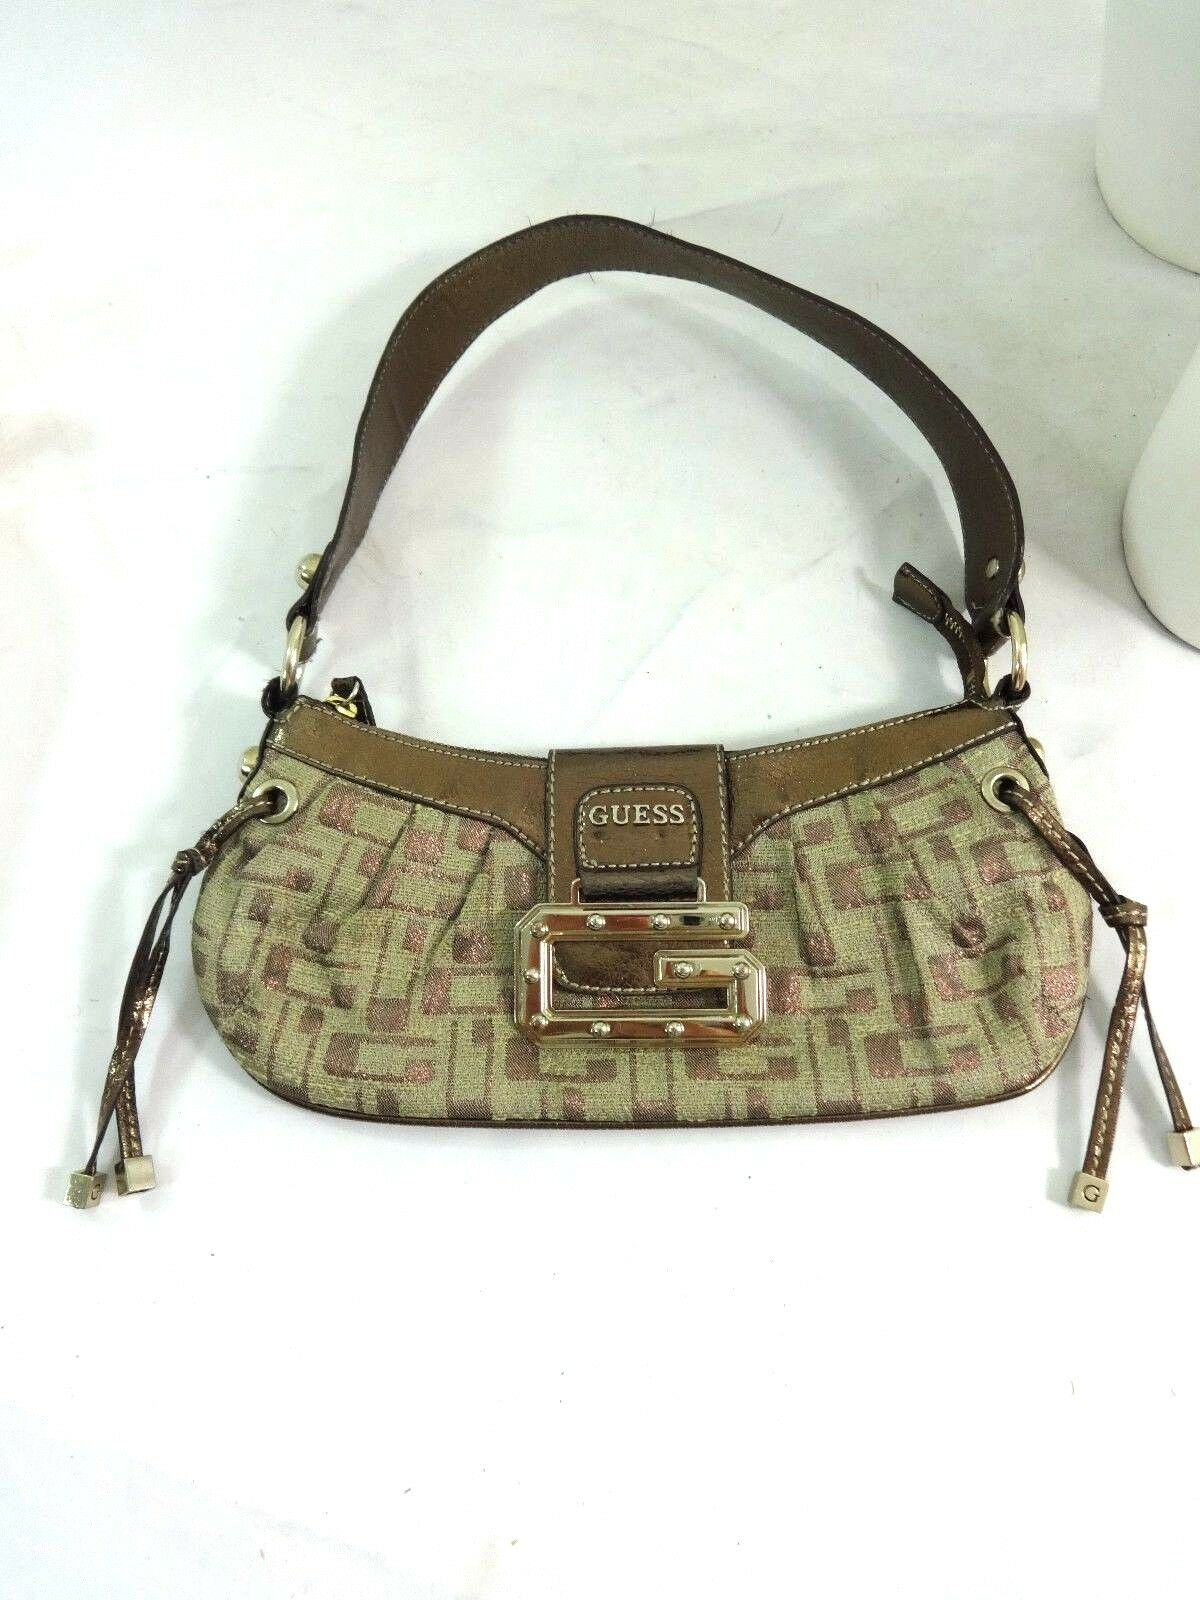 d599a632f7b9 Details about GUESS SMALL BROWN   BRONZE HAND BAG SHOULDER STRAP PURSE VERY  CUTE!!